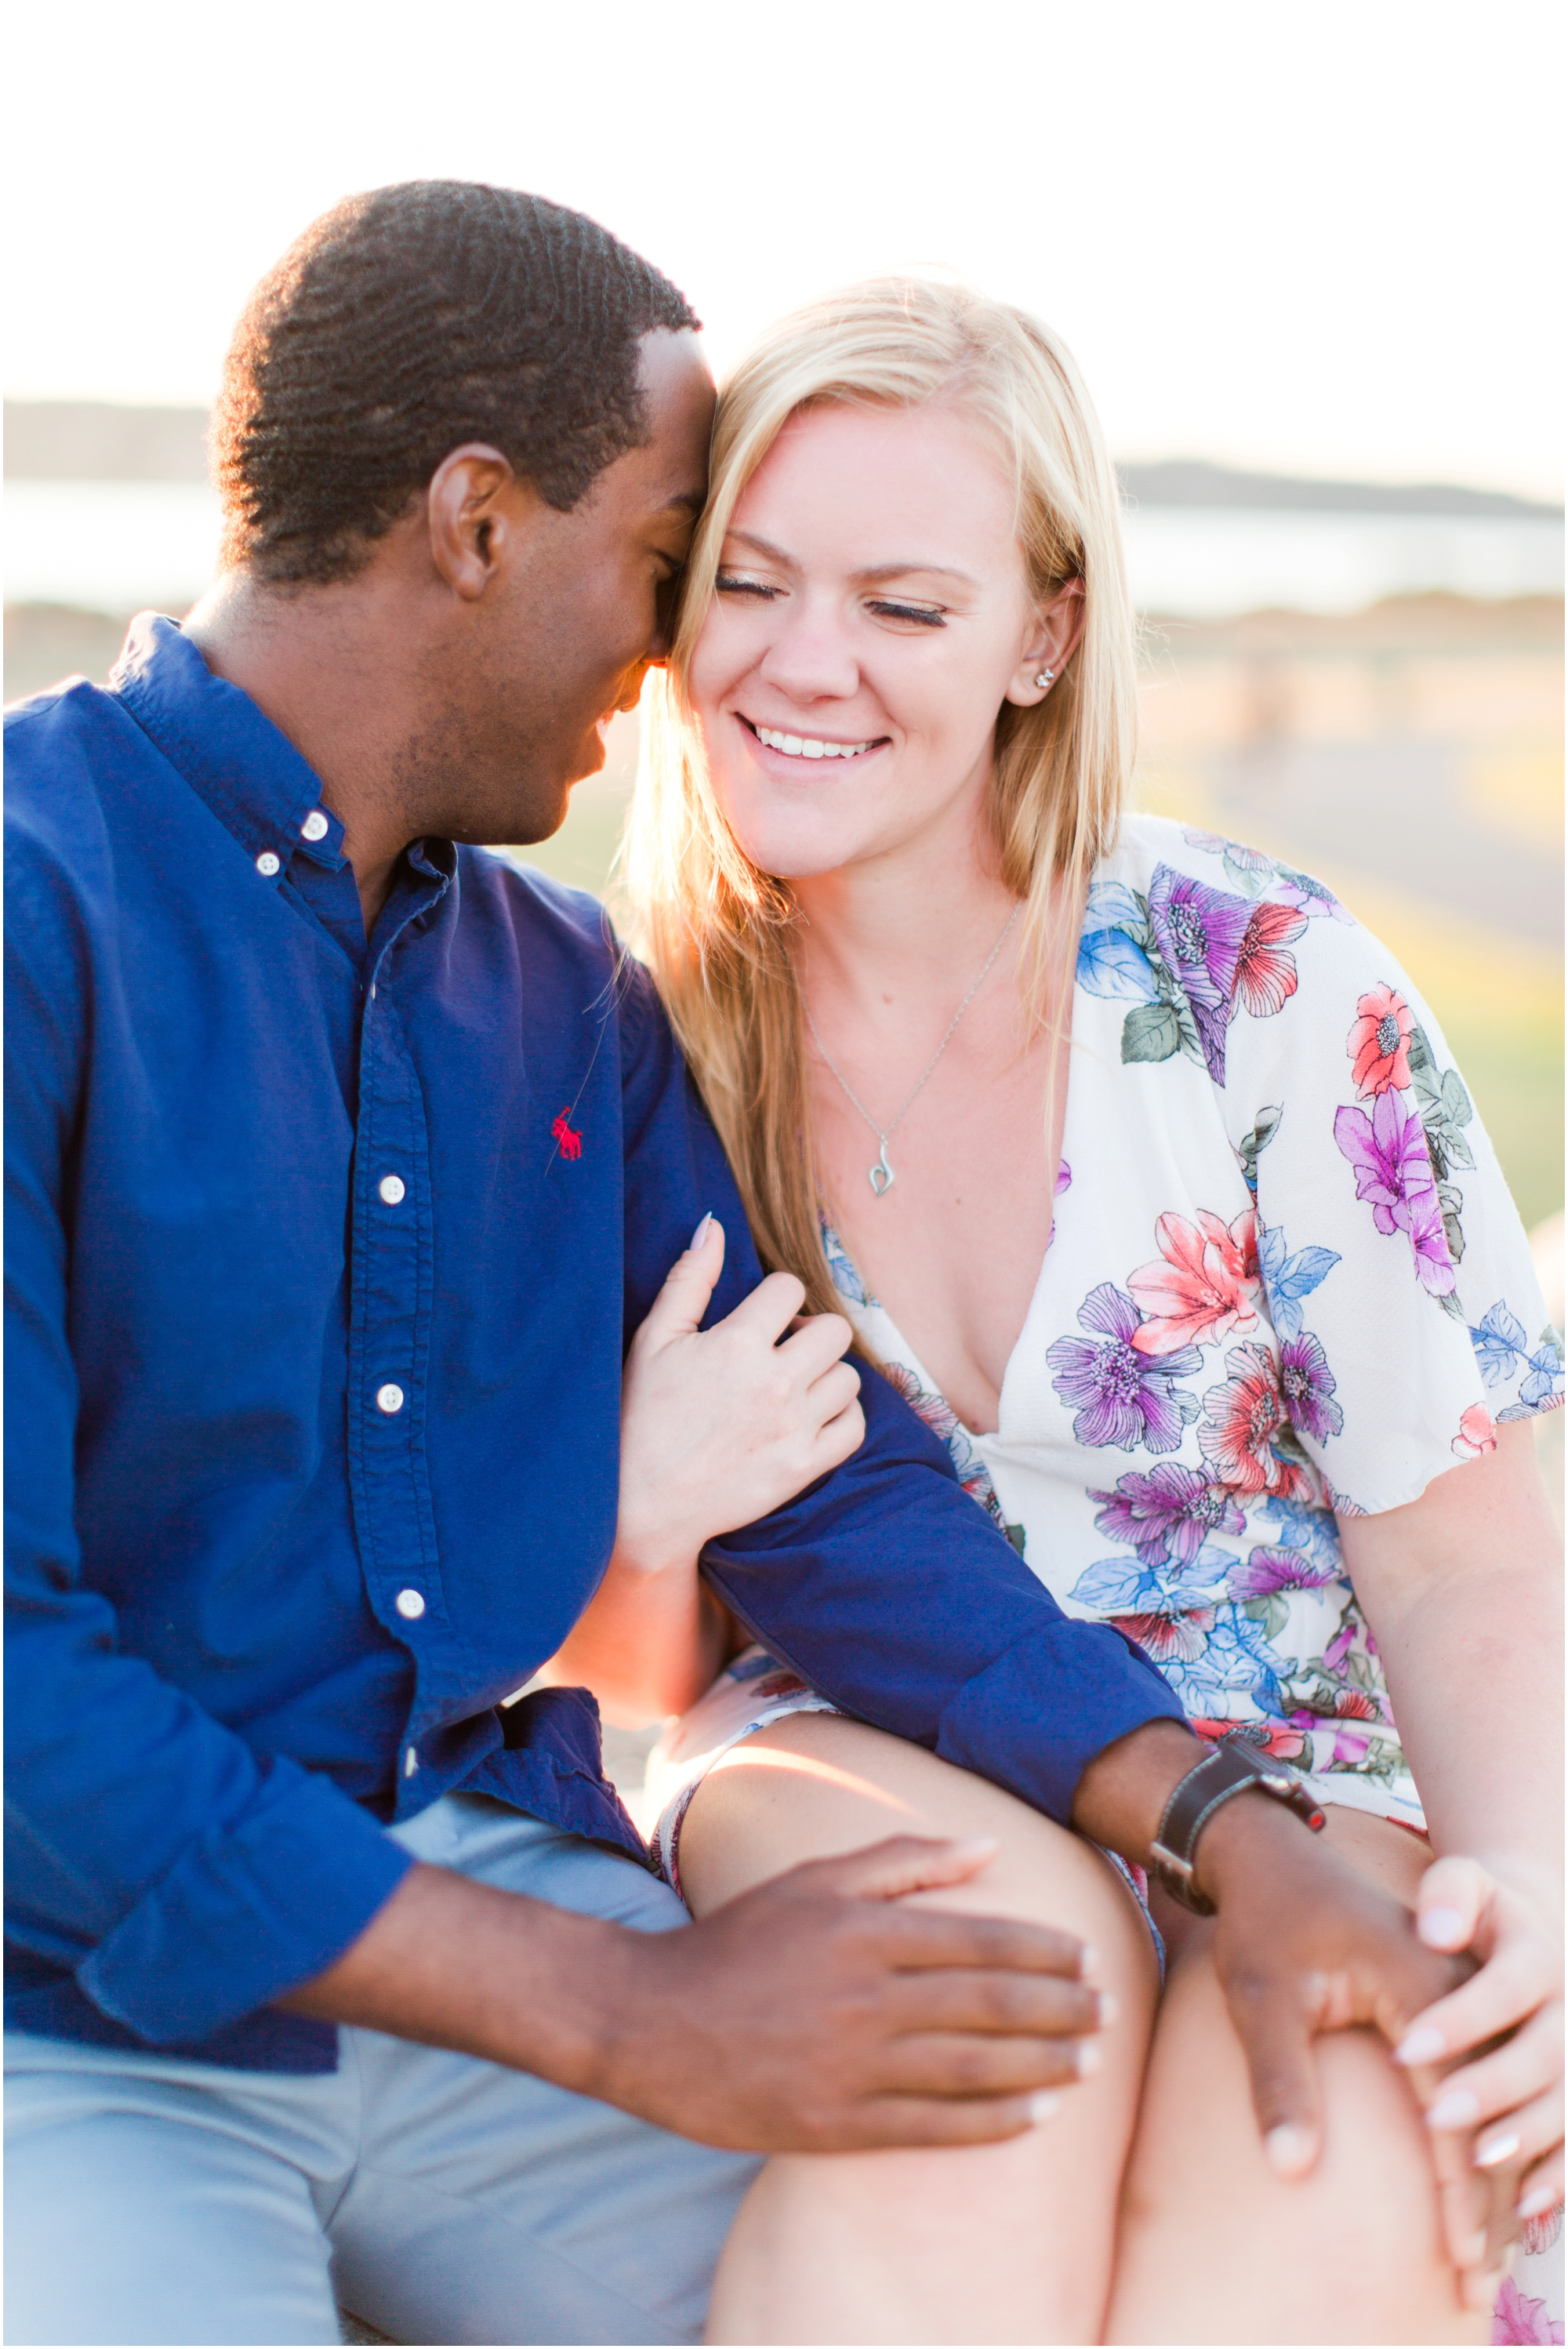 Chambers Bay engagement shoot in Tacoma, WA. Photos by Briana Calderon Photography based in the greater Seattle Area._1269.jpg